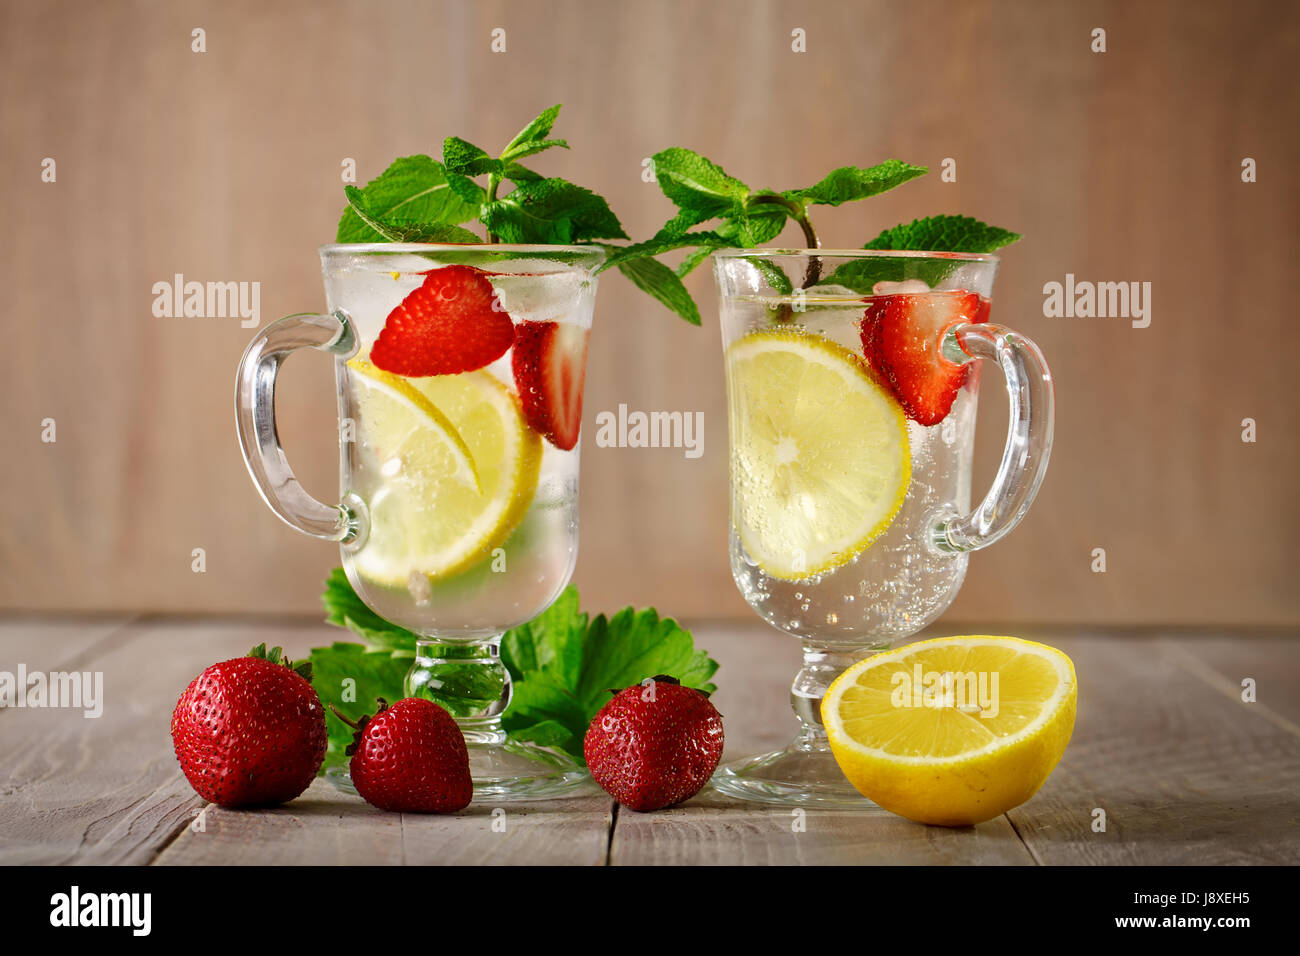 Fresh summer healthy drink with lemon and strawberries with ice. - Stock Image